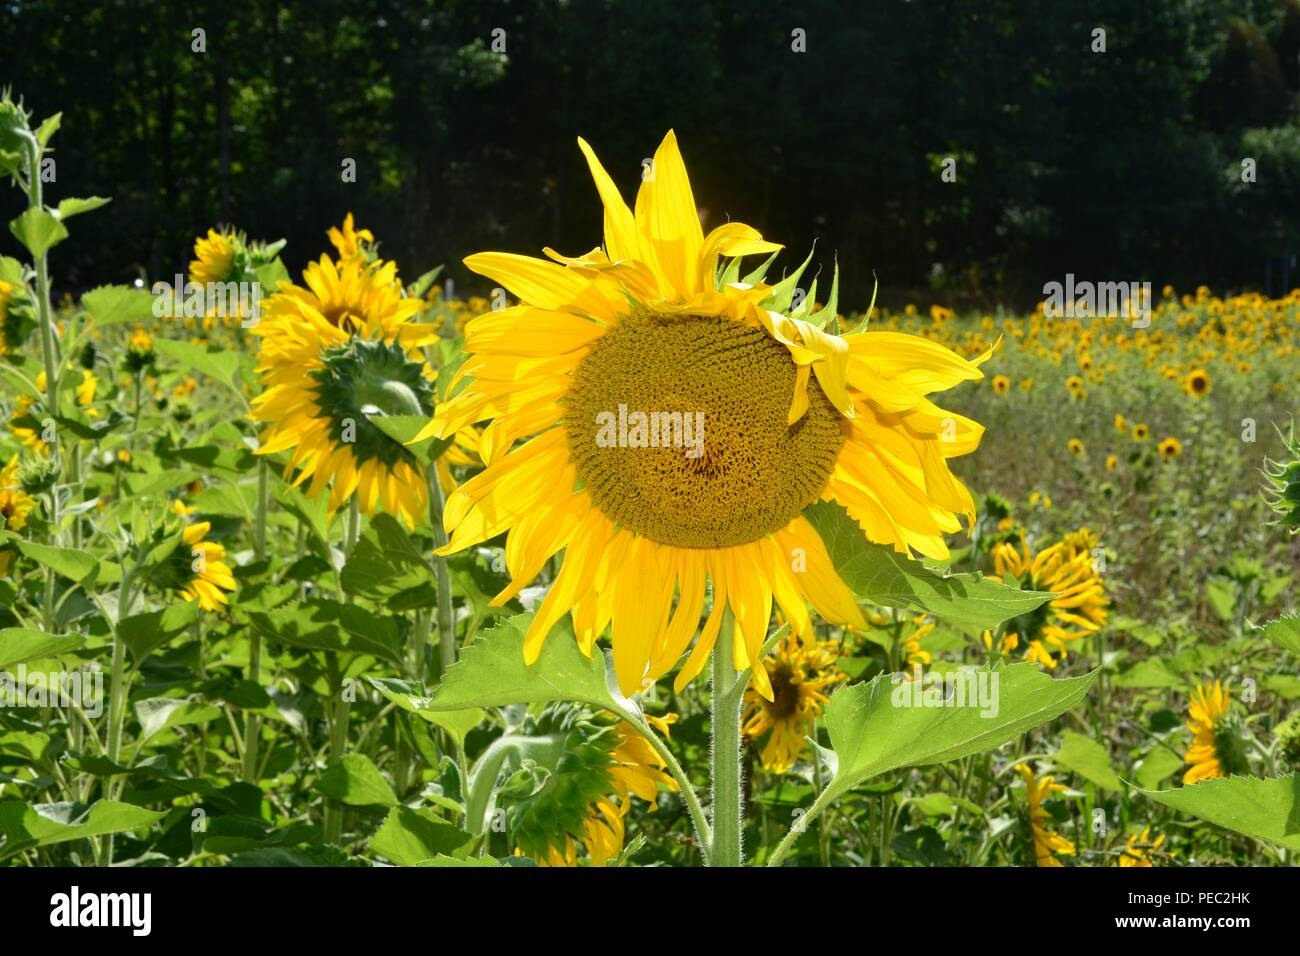 Big sunflowers  on the sunflowerfield in green nature - Stock Image